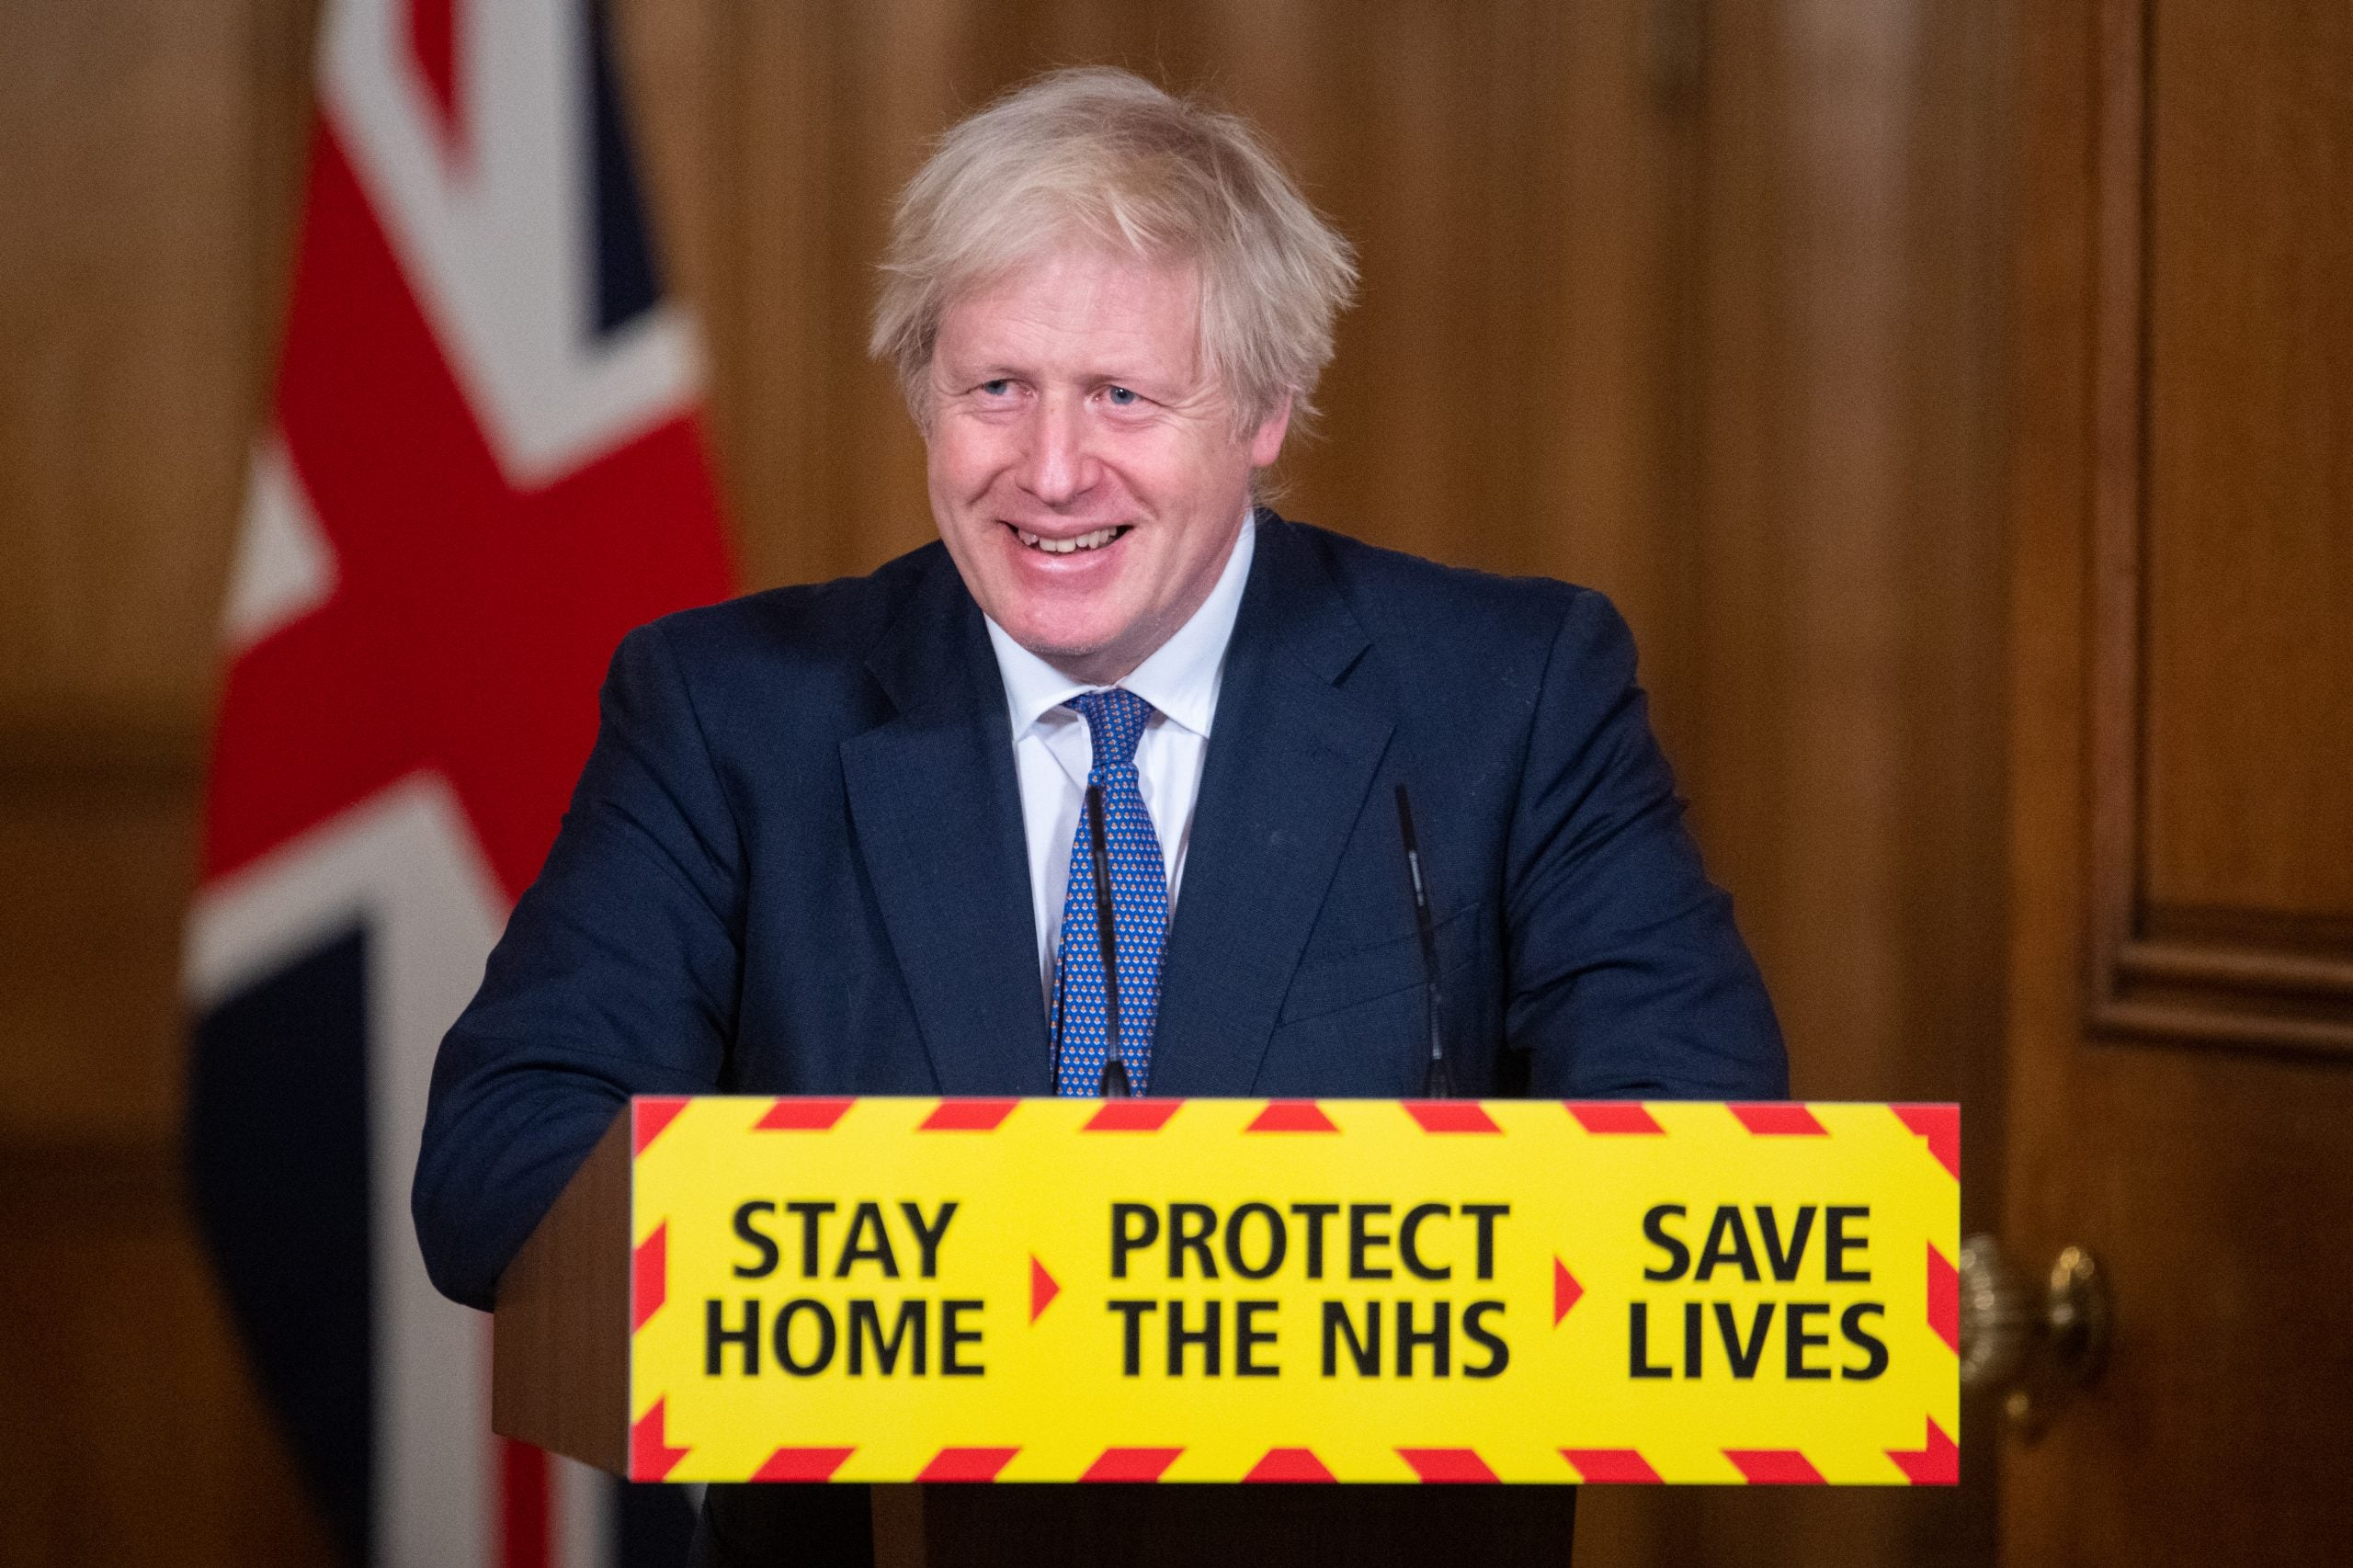 Boris Johnson's clever trick to get away with anything – even the Covid catastrophe